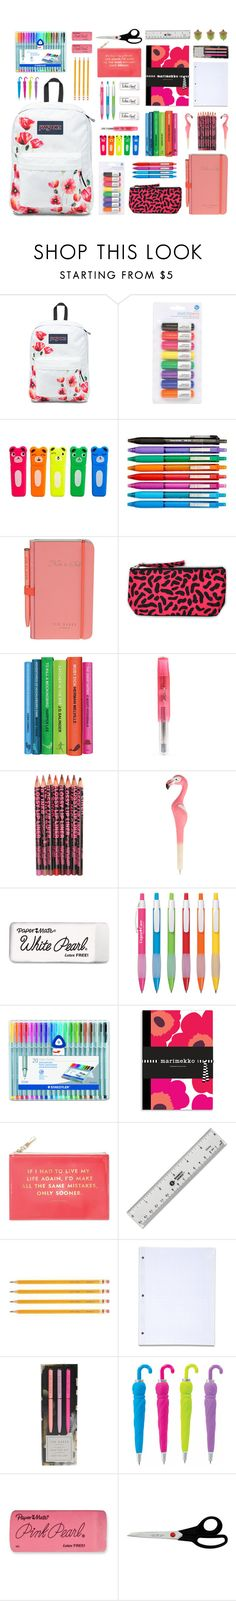 """#127 Back To School Supplies (7)"" by konstantina00085 ❤ liked on Polyvore featuring interior, interiors, interior design, home, home decor, interior decorating, Silhouette, Paperchase, Wild & Wolf and Motel"